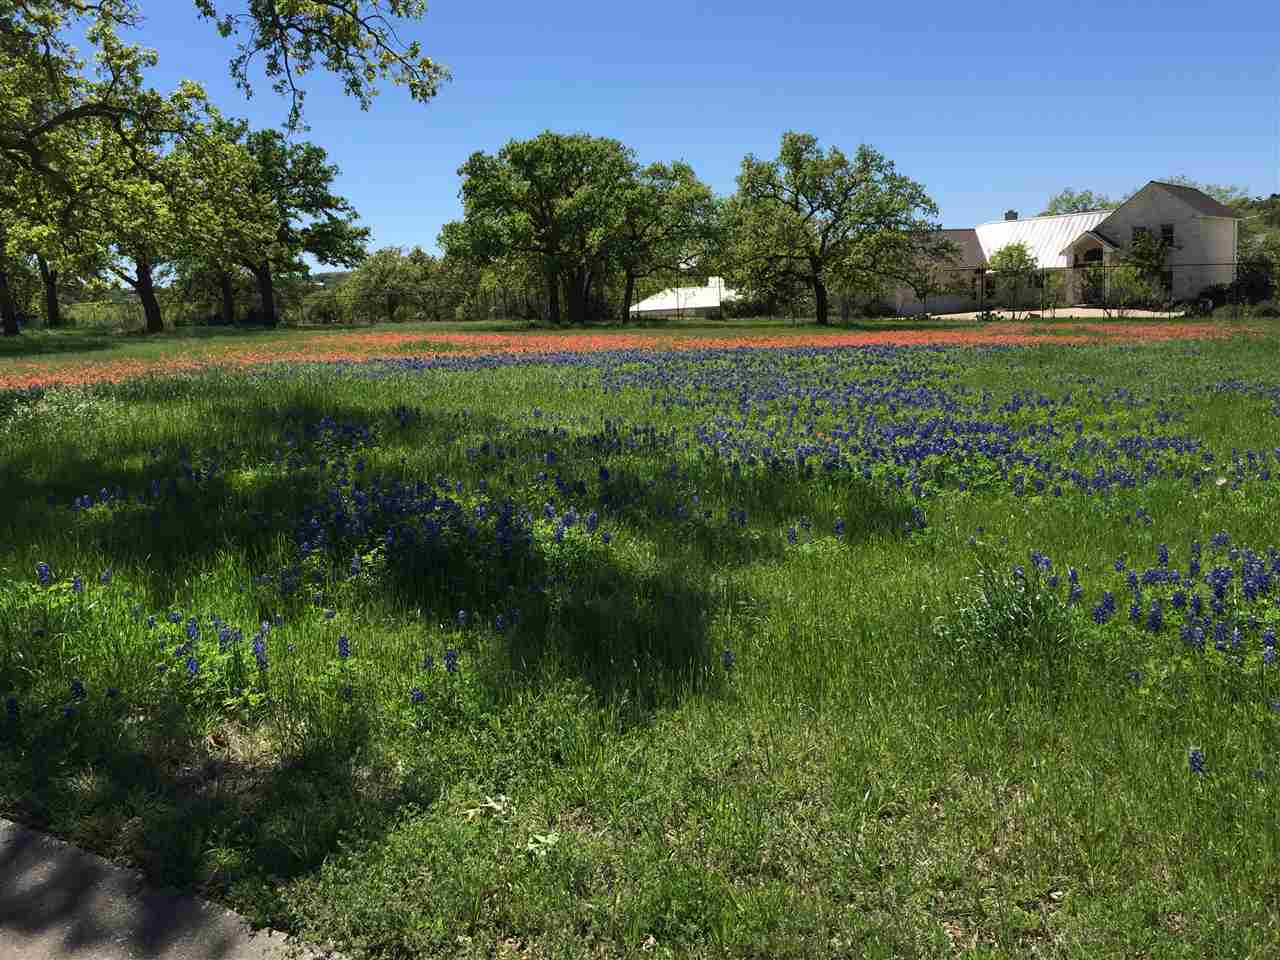 Additional photo for property listing at 109 Applehead Island 109 Applehead Island Horseshoe Bay, Texas 78657 Estados Unidos